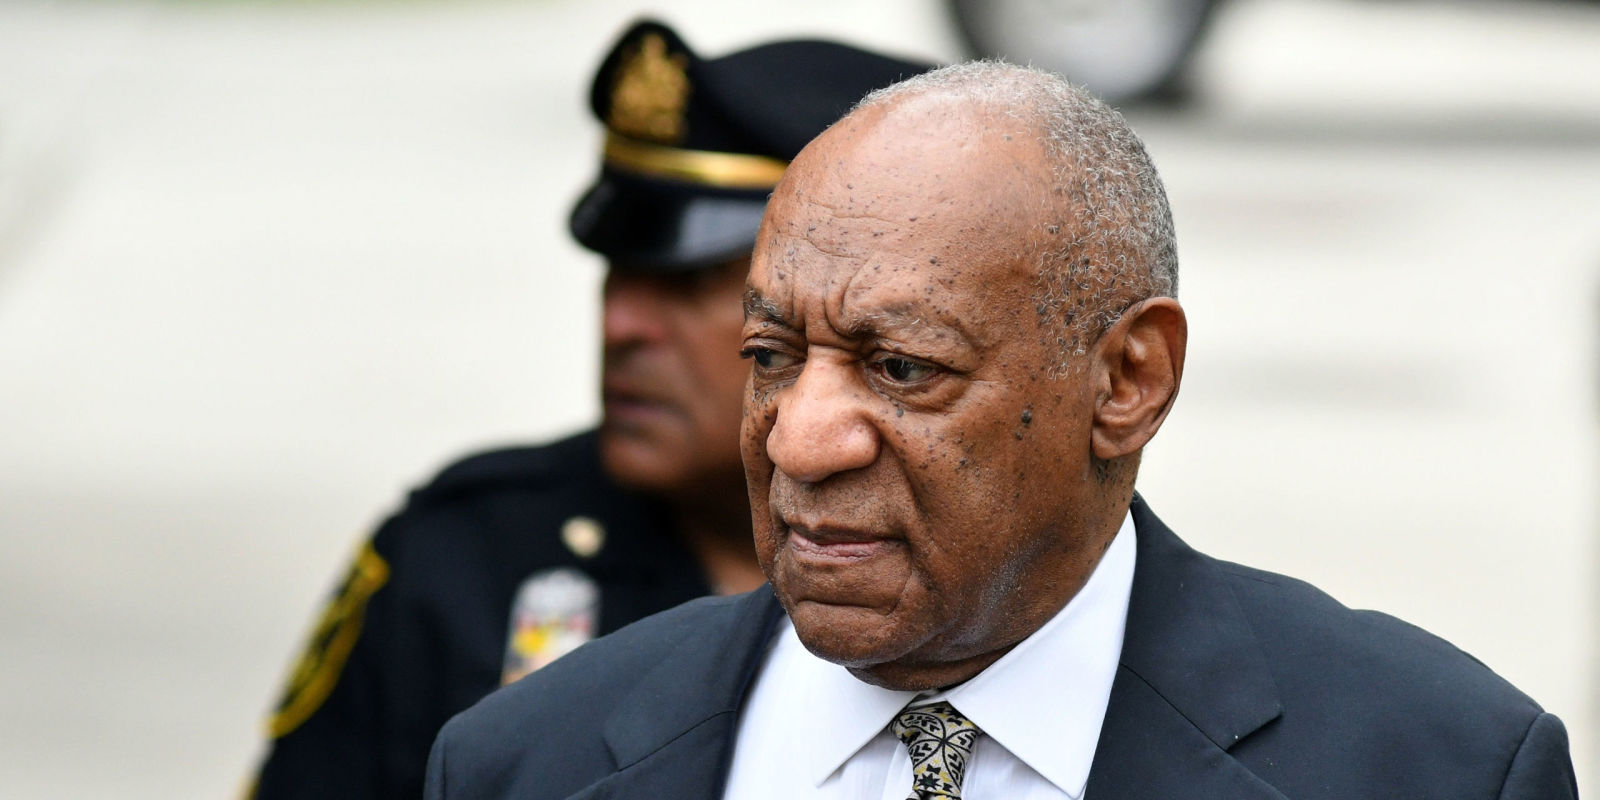 Bill Cosby's Sexual Assault Trial Declared a Mistrial, After Jury Deadlock